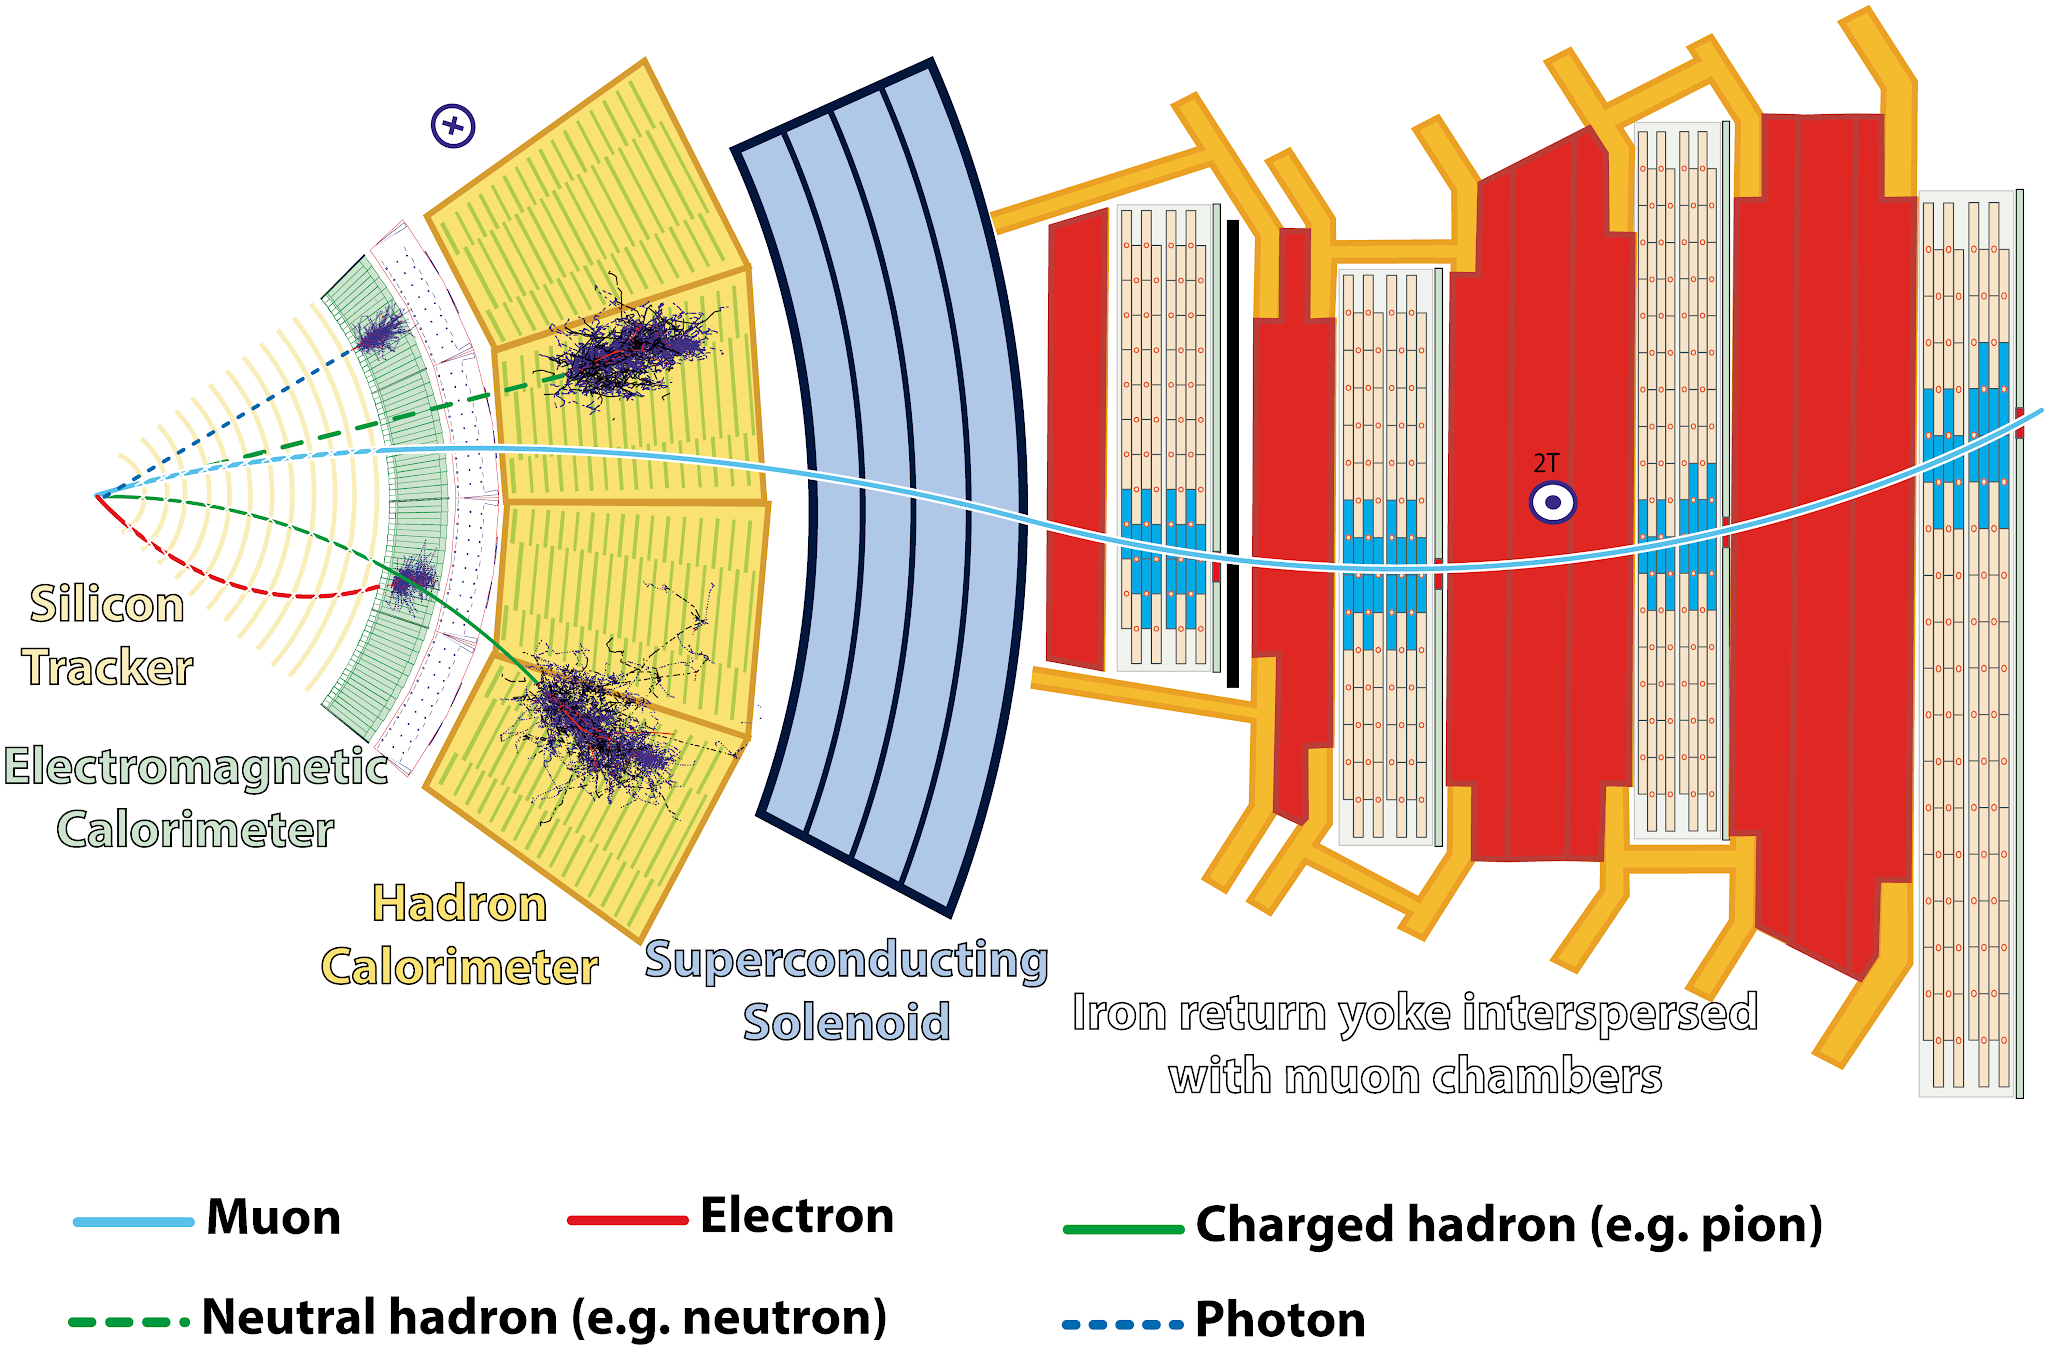 Layout of the CMS detector, showing different particle species interacting with the sub-detectors (Image credit: CERN).